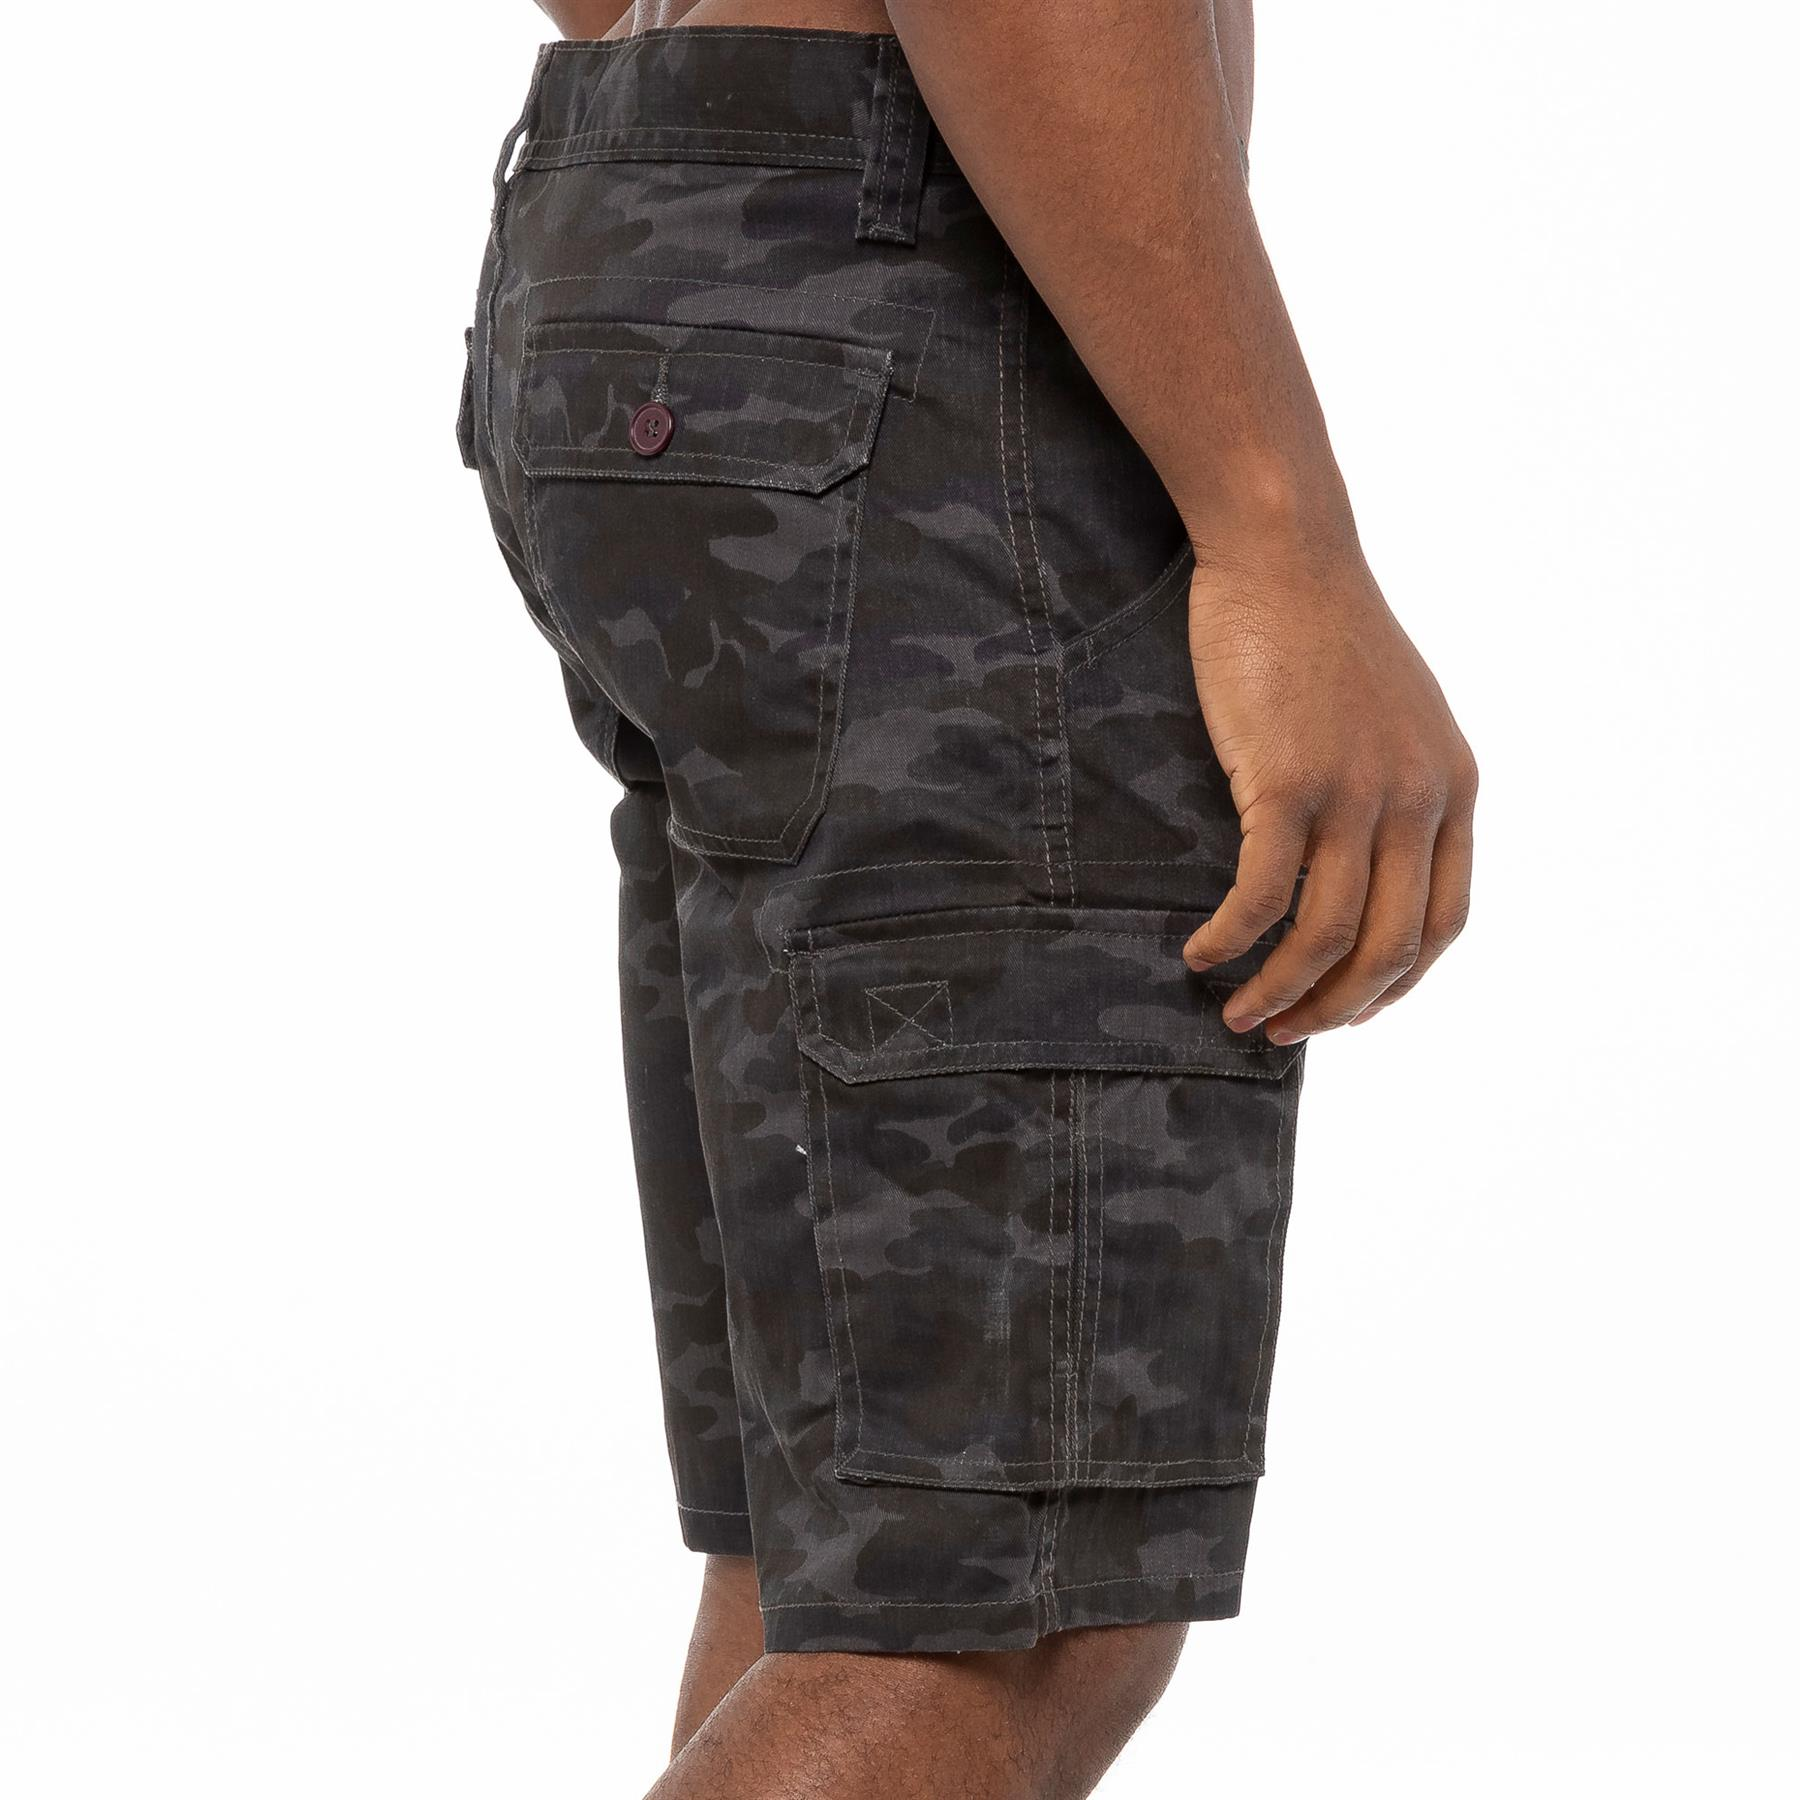 thumbnail 19 - Kruze Jeans Mens Army Combat Shorts Camouflage Cargo Casual Camo Work Half Pants